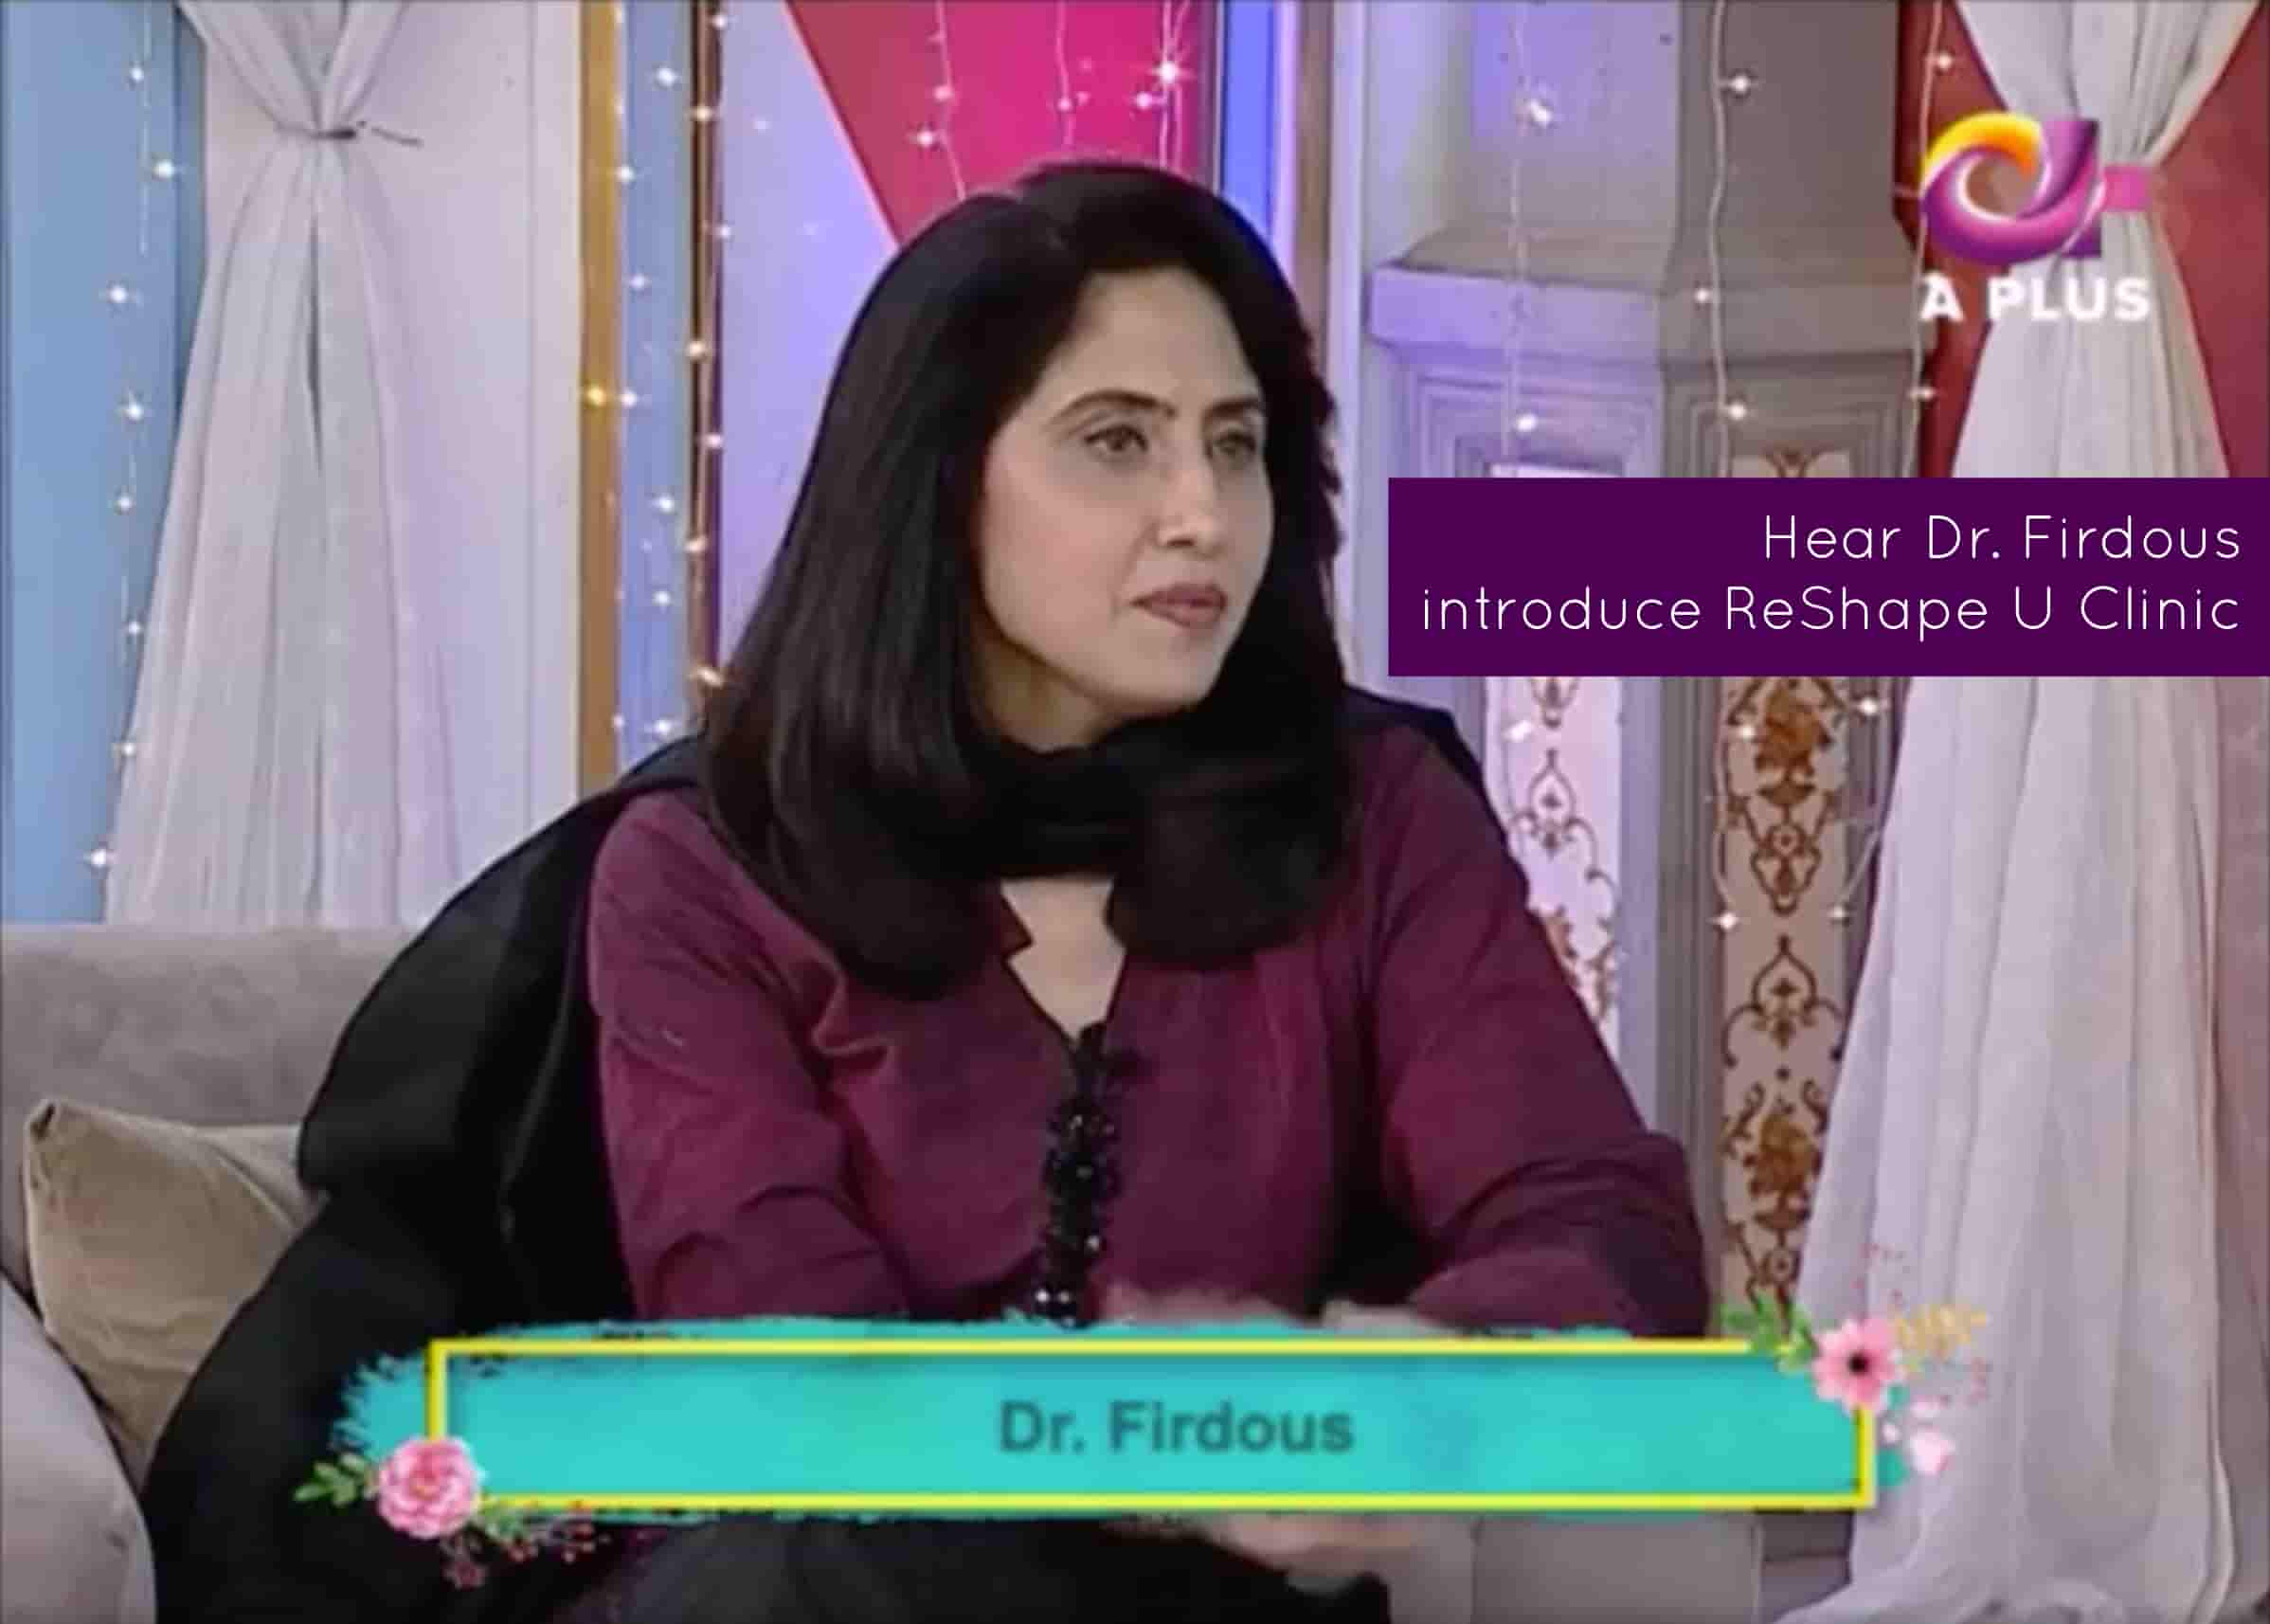 Dr. Firdous and Dr. Ahmad Video Gallery